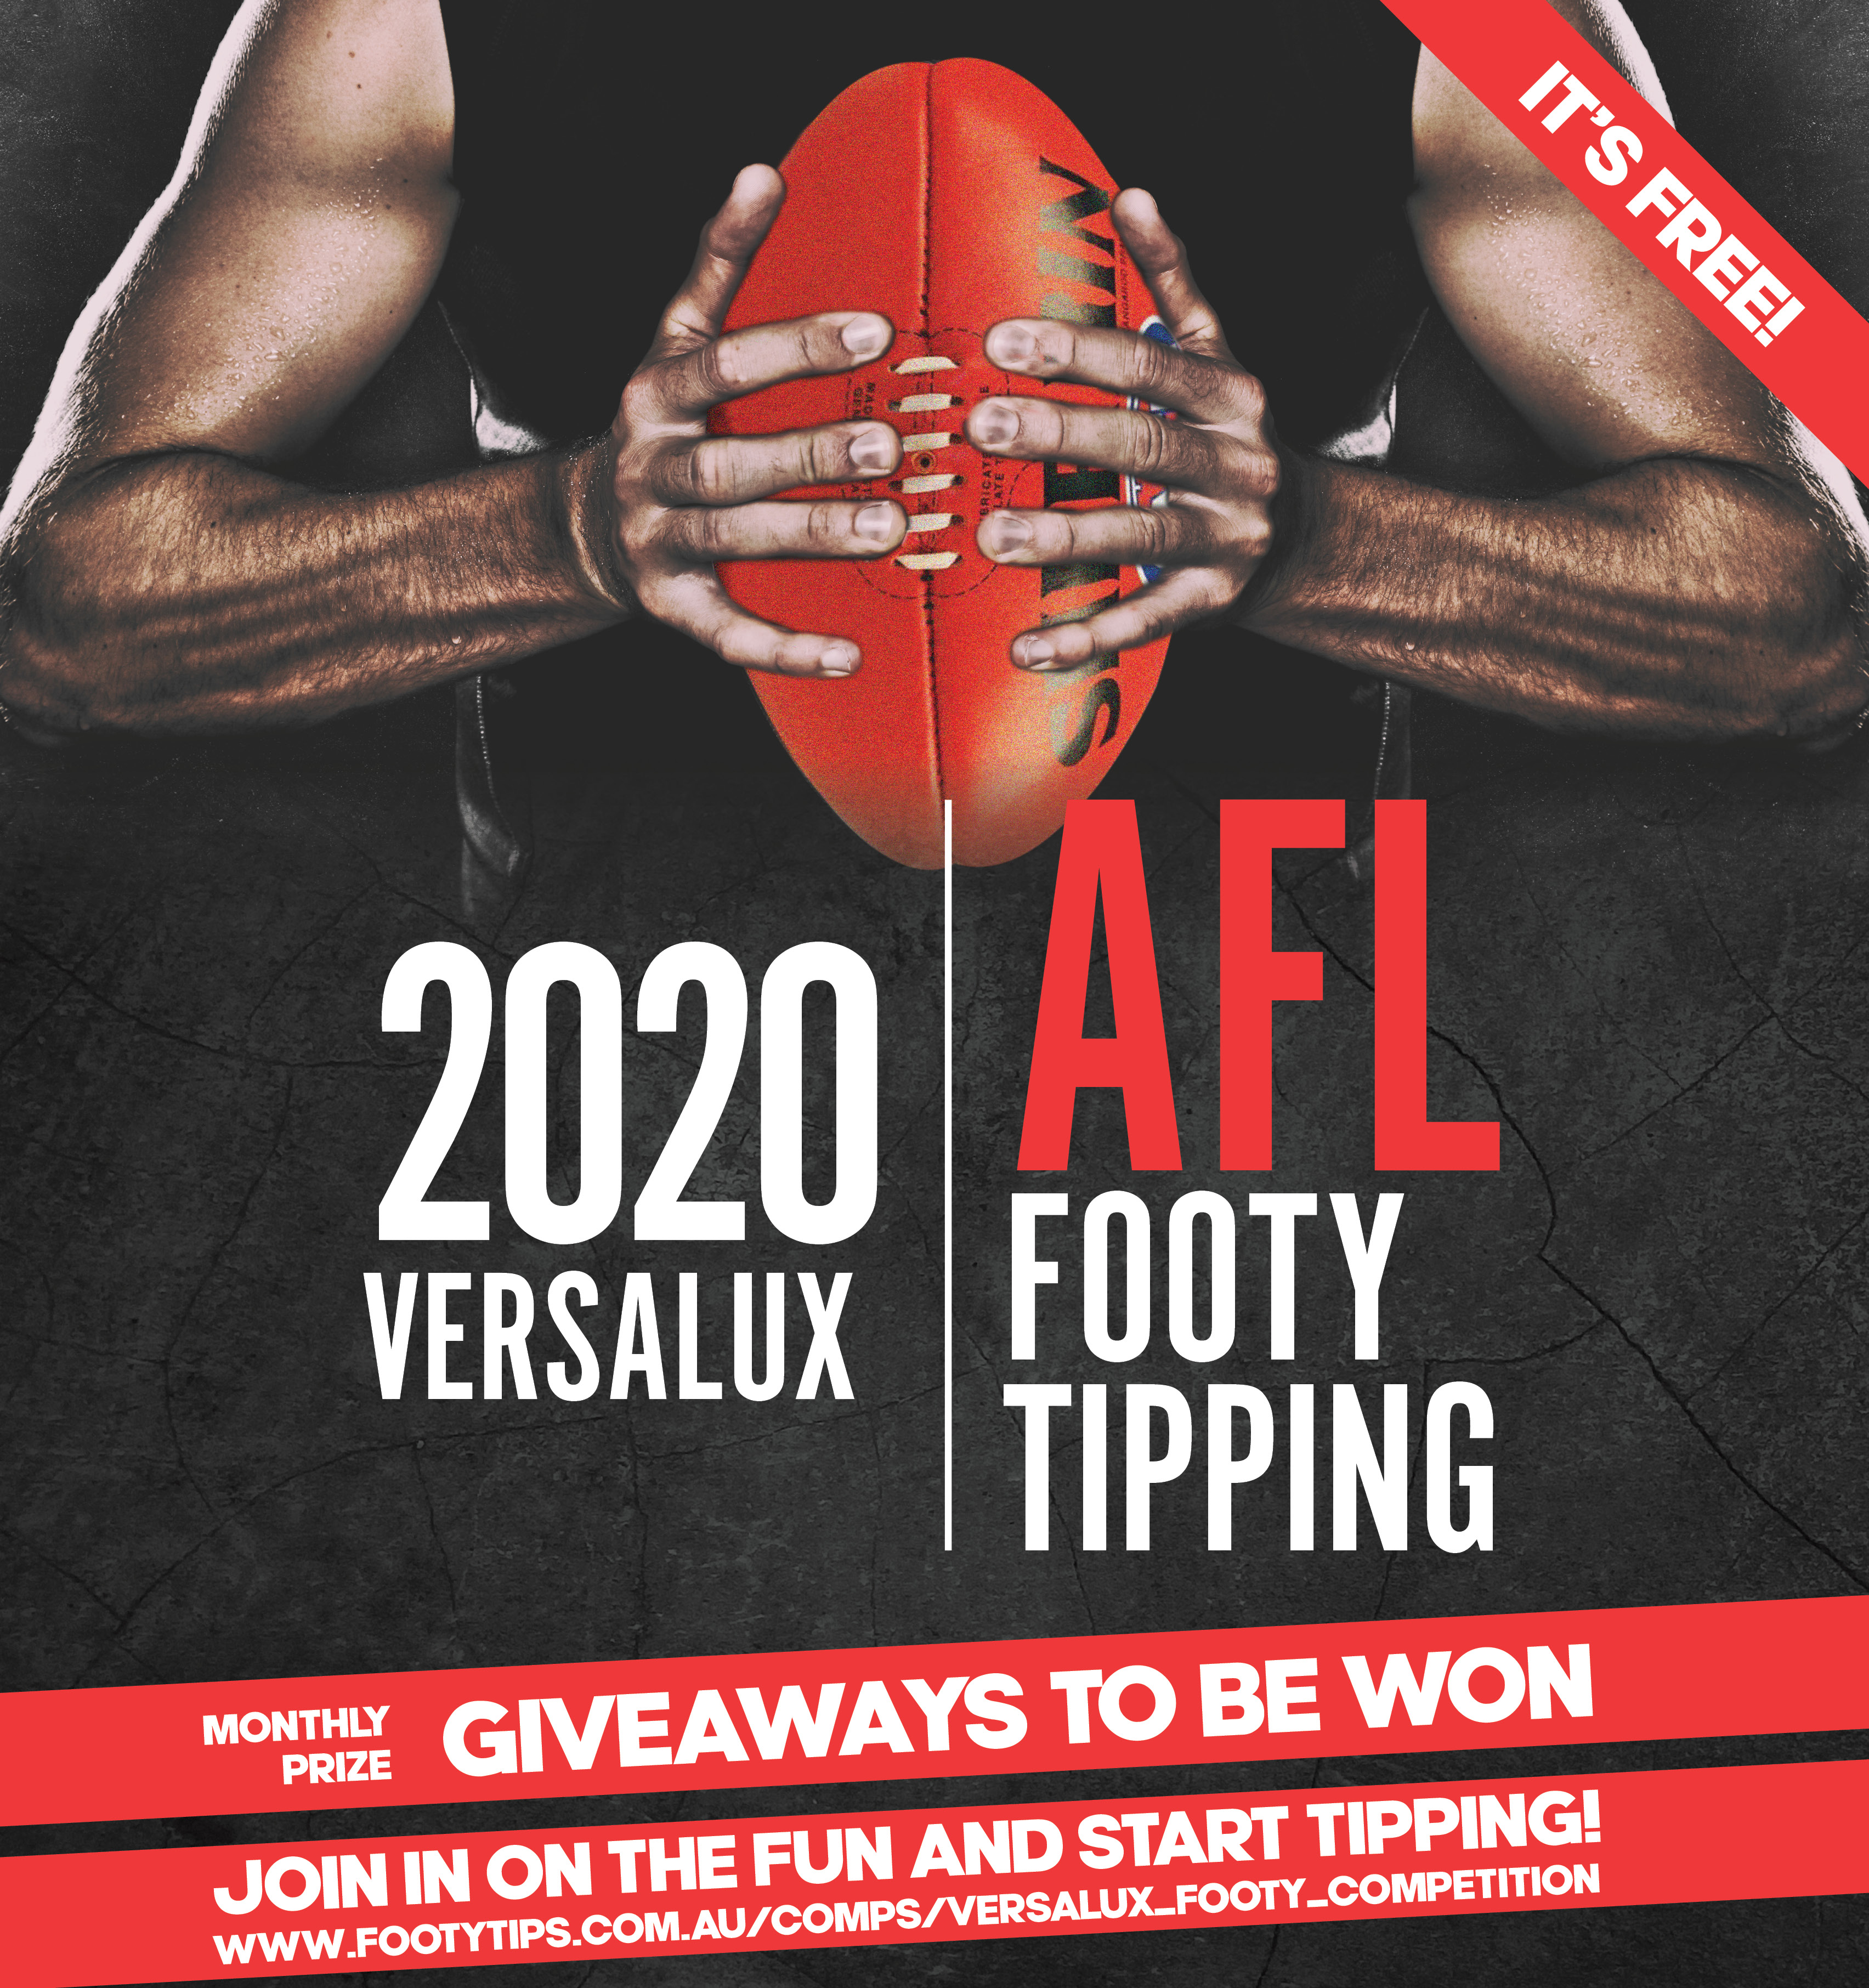 2019 Versalux Footy tipping edm image